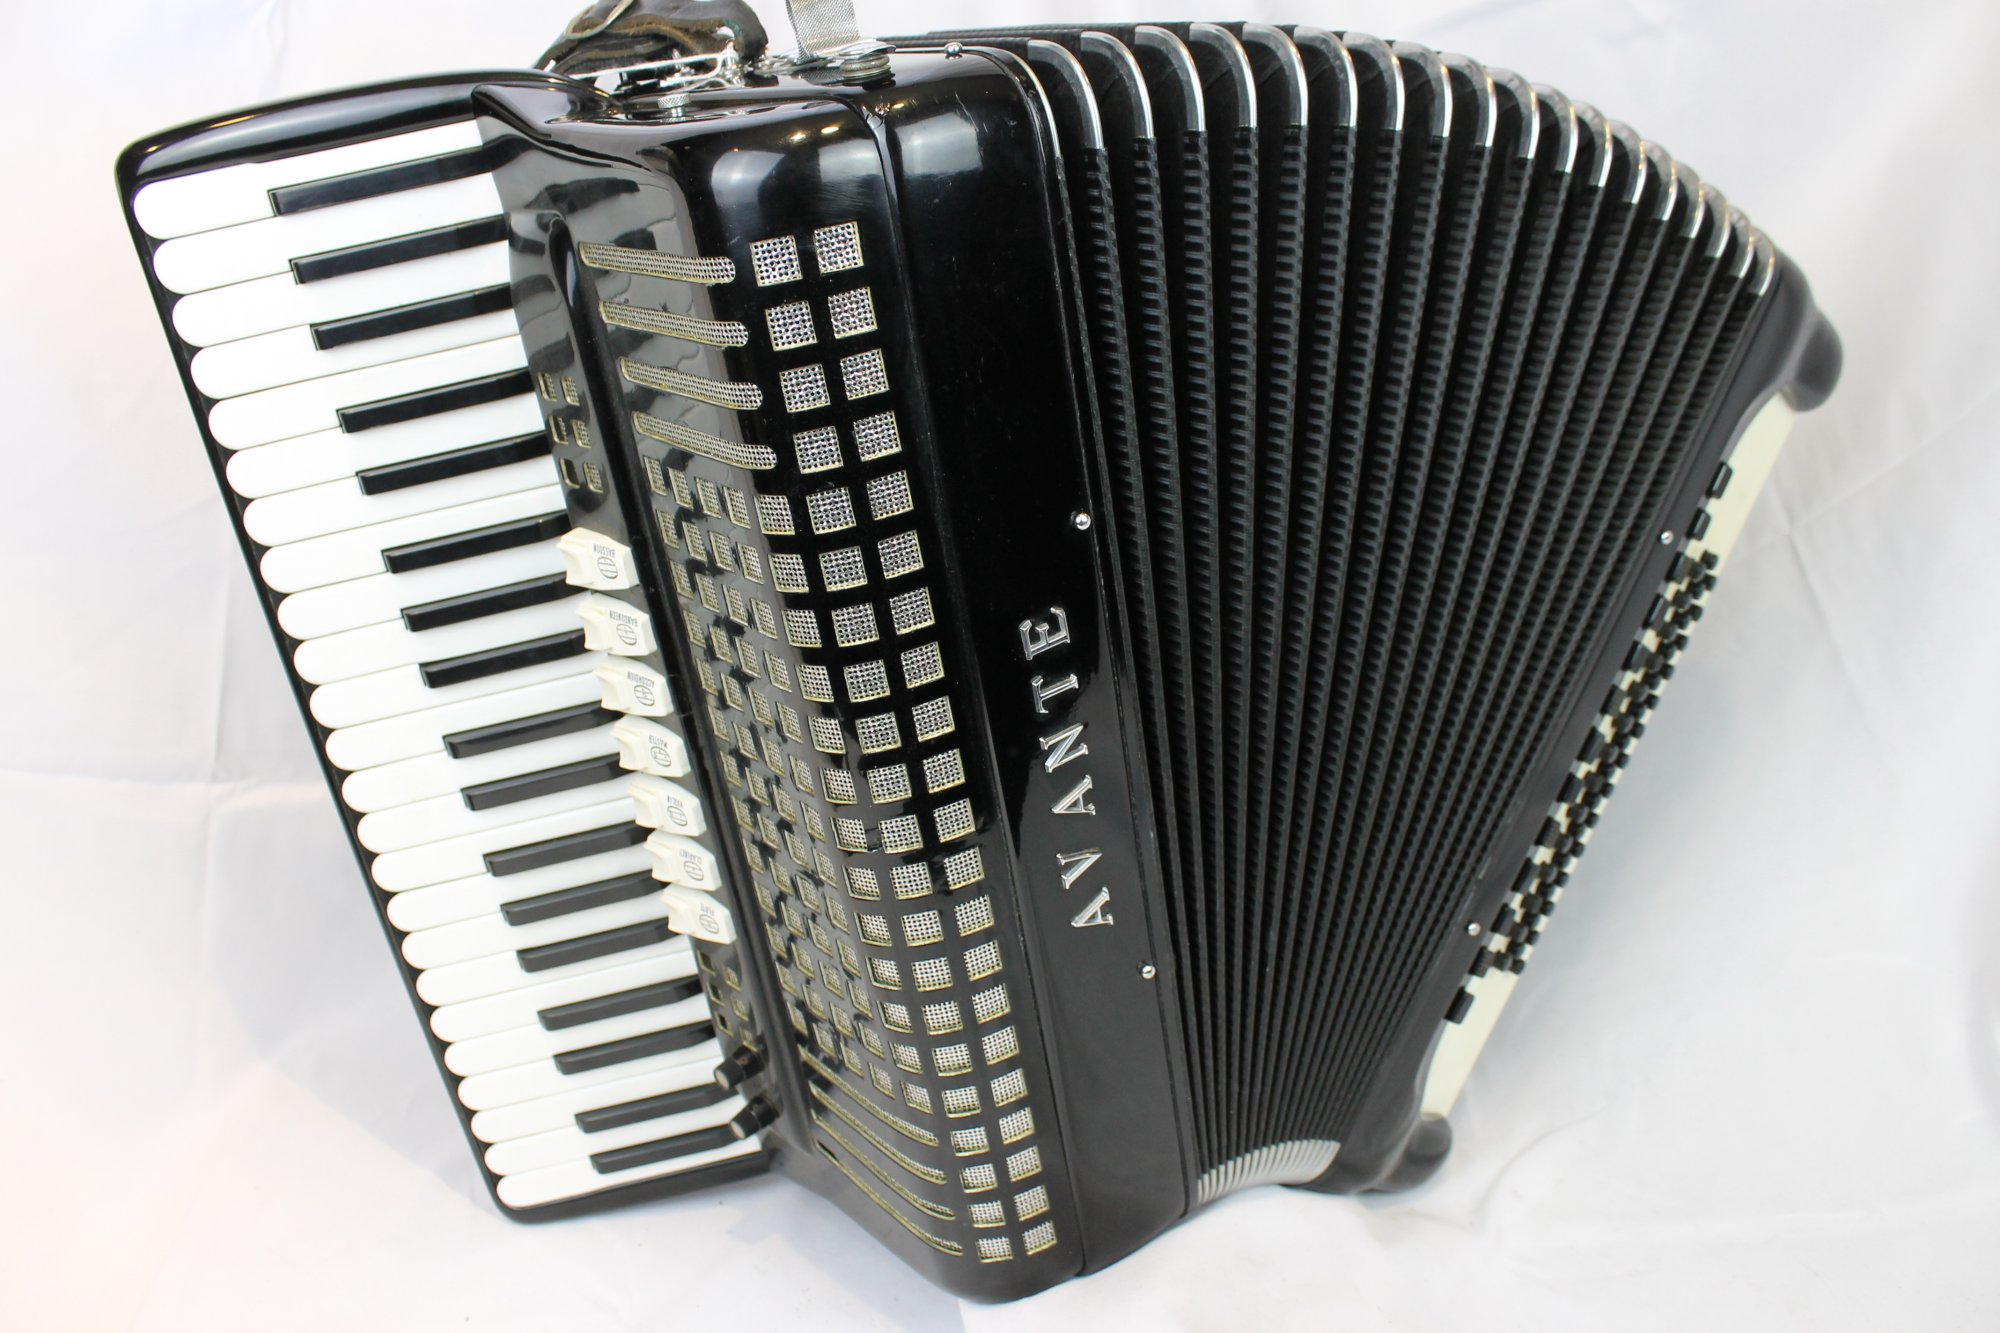 4058 - Like New Black Borsini Avante Bassetti C System Free Bass Piano Accordion LMM 41 120